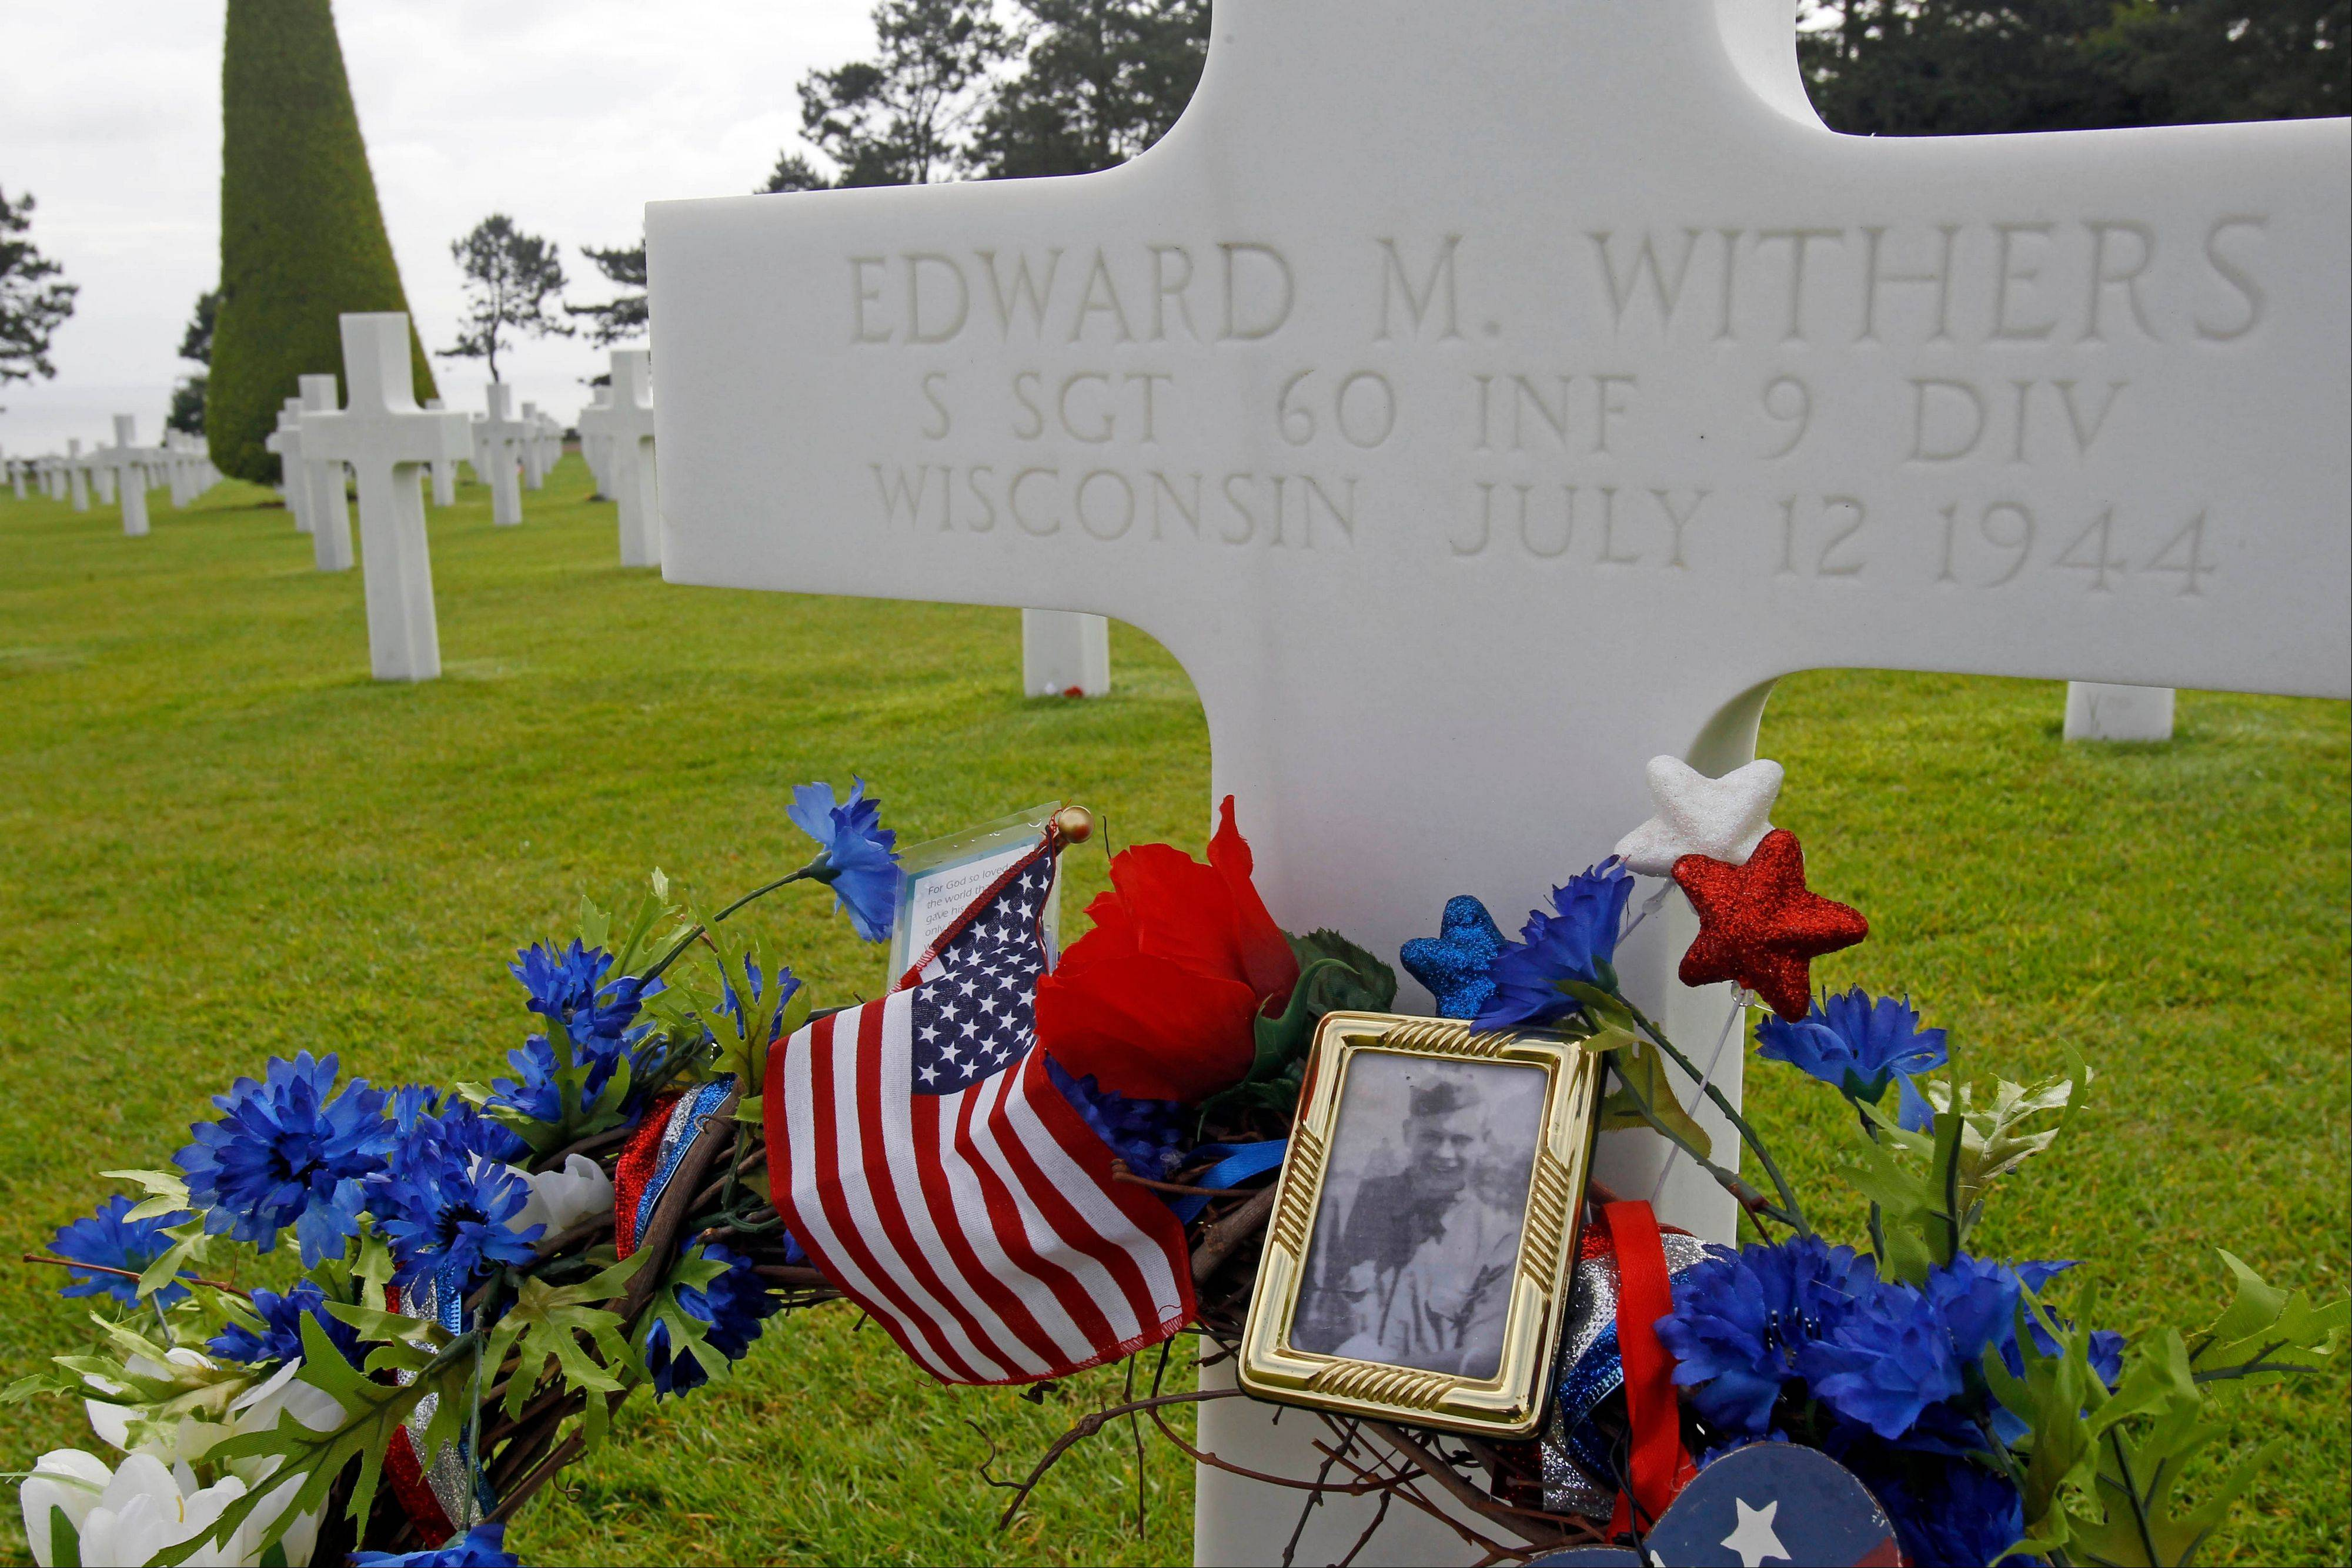 The grave of Sgt Edward M. Withers, which is among the 9,387 graves of the Colleville American military cemetery, has been decorated for the commemoration of the 68th anniversary of D-Day, in Colleville sur Mer, western France, Wednesday June 6, 2012.